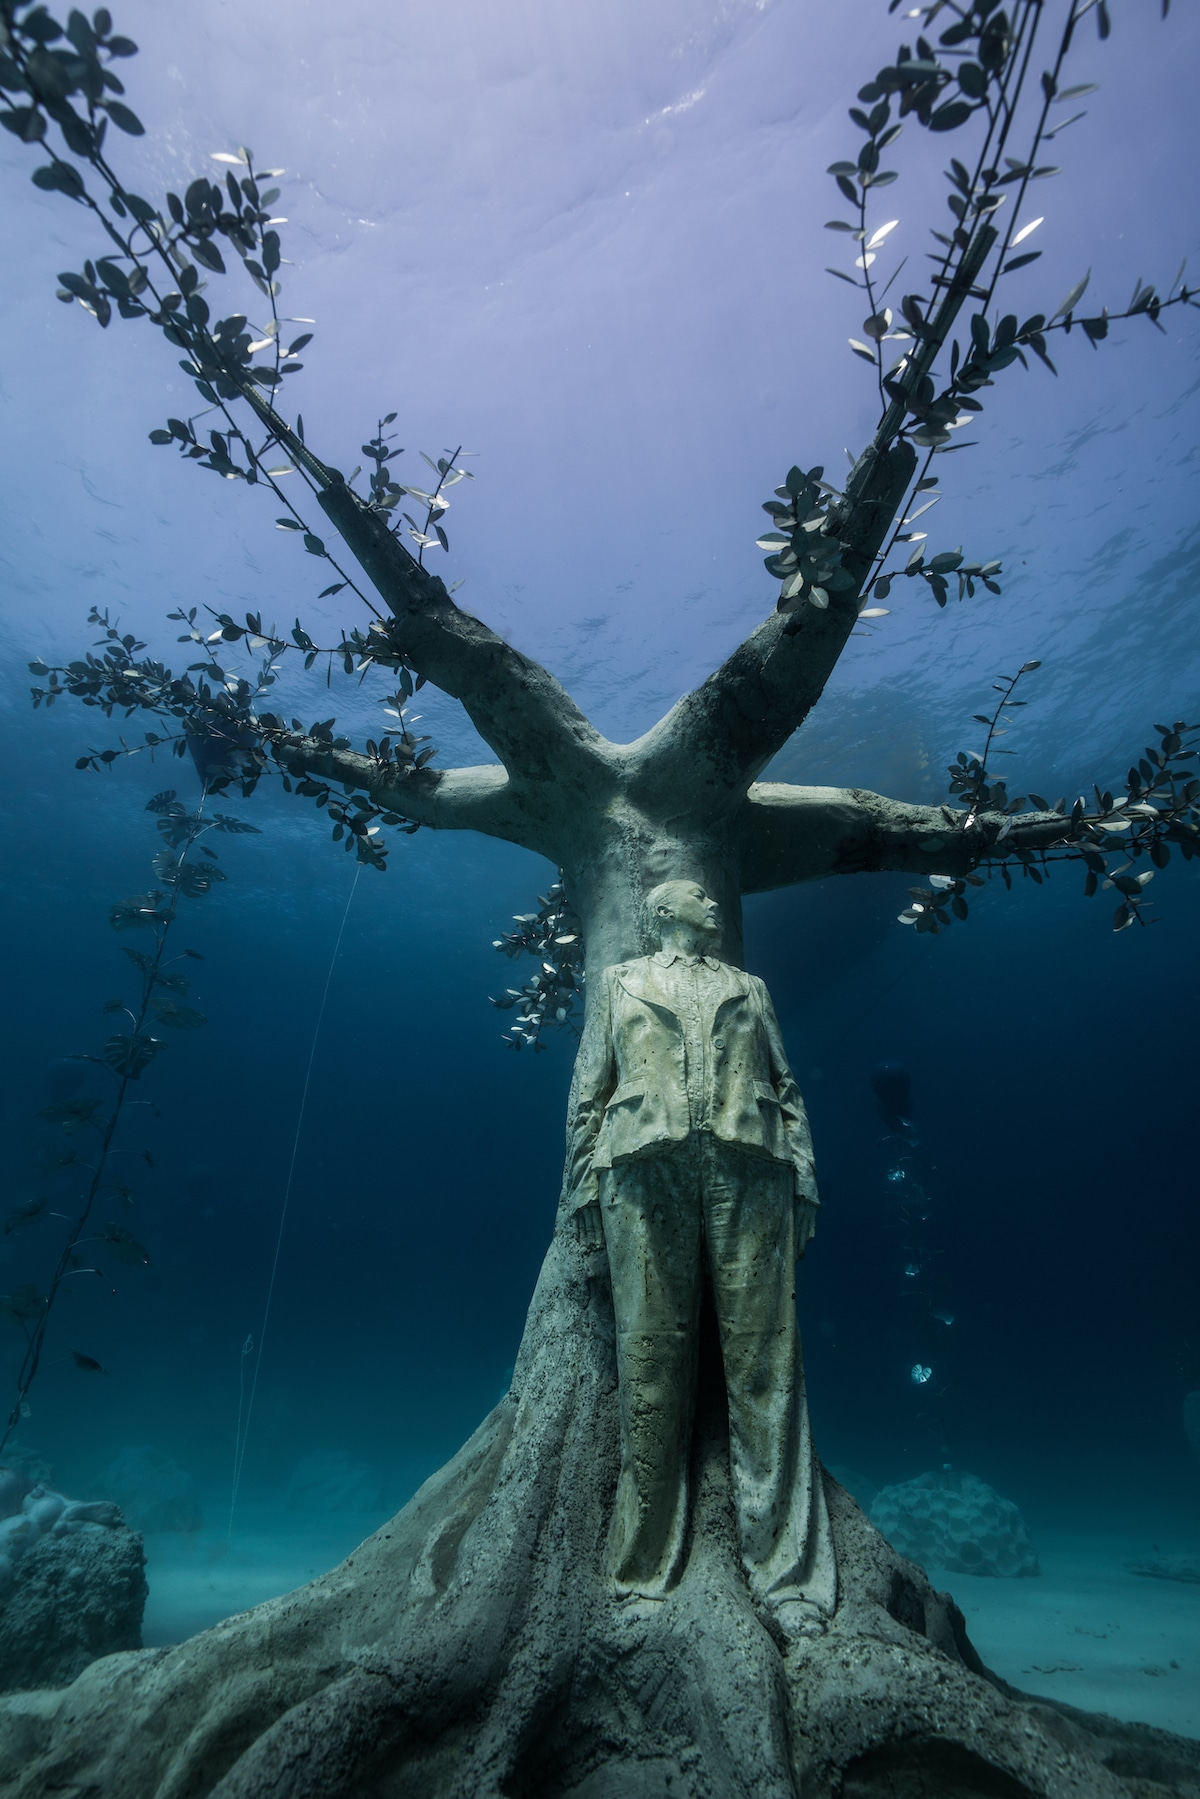 Sculpture by Jason deCaires Taylor, MUSAN, the first underwater museum in the Mediterranean